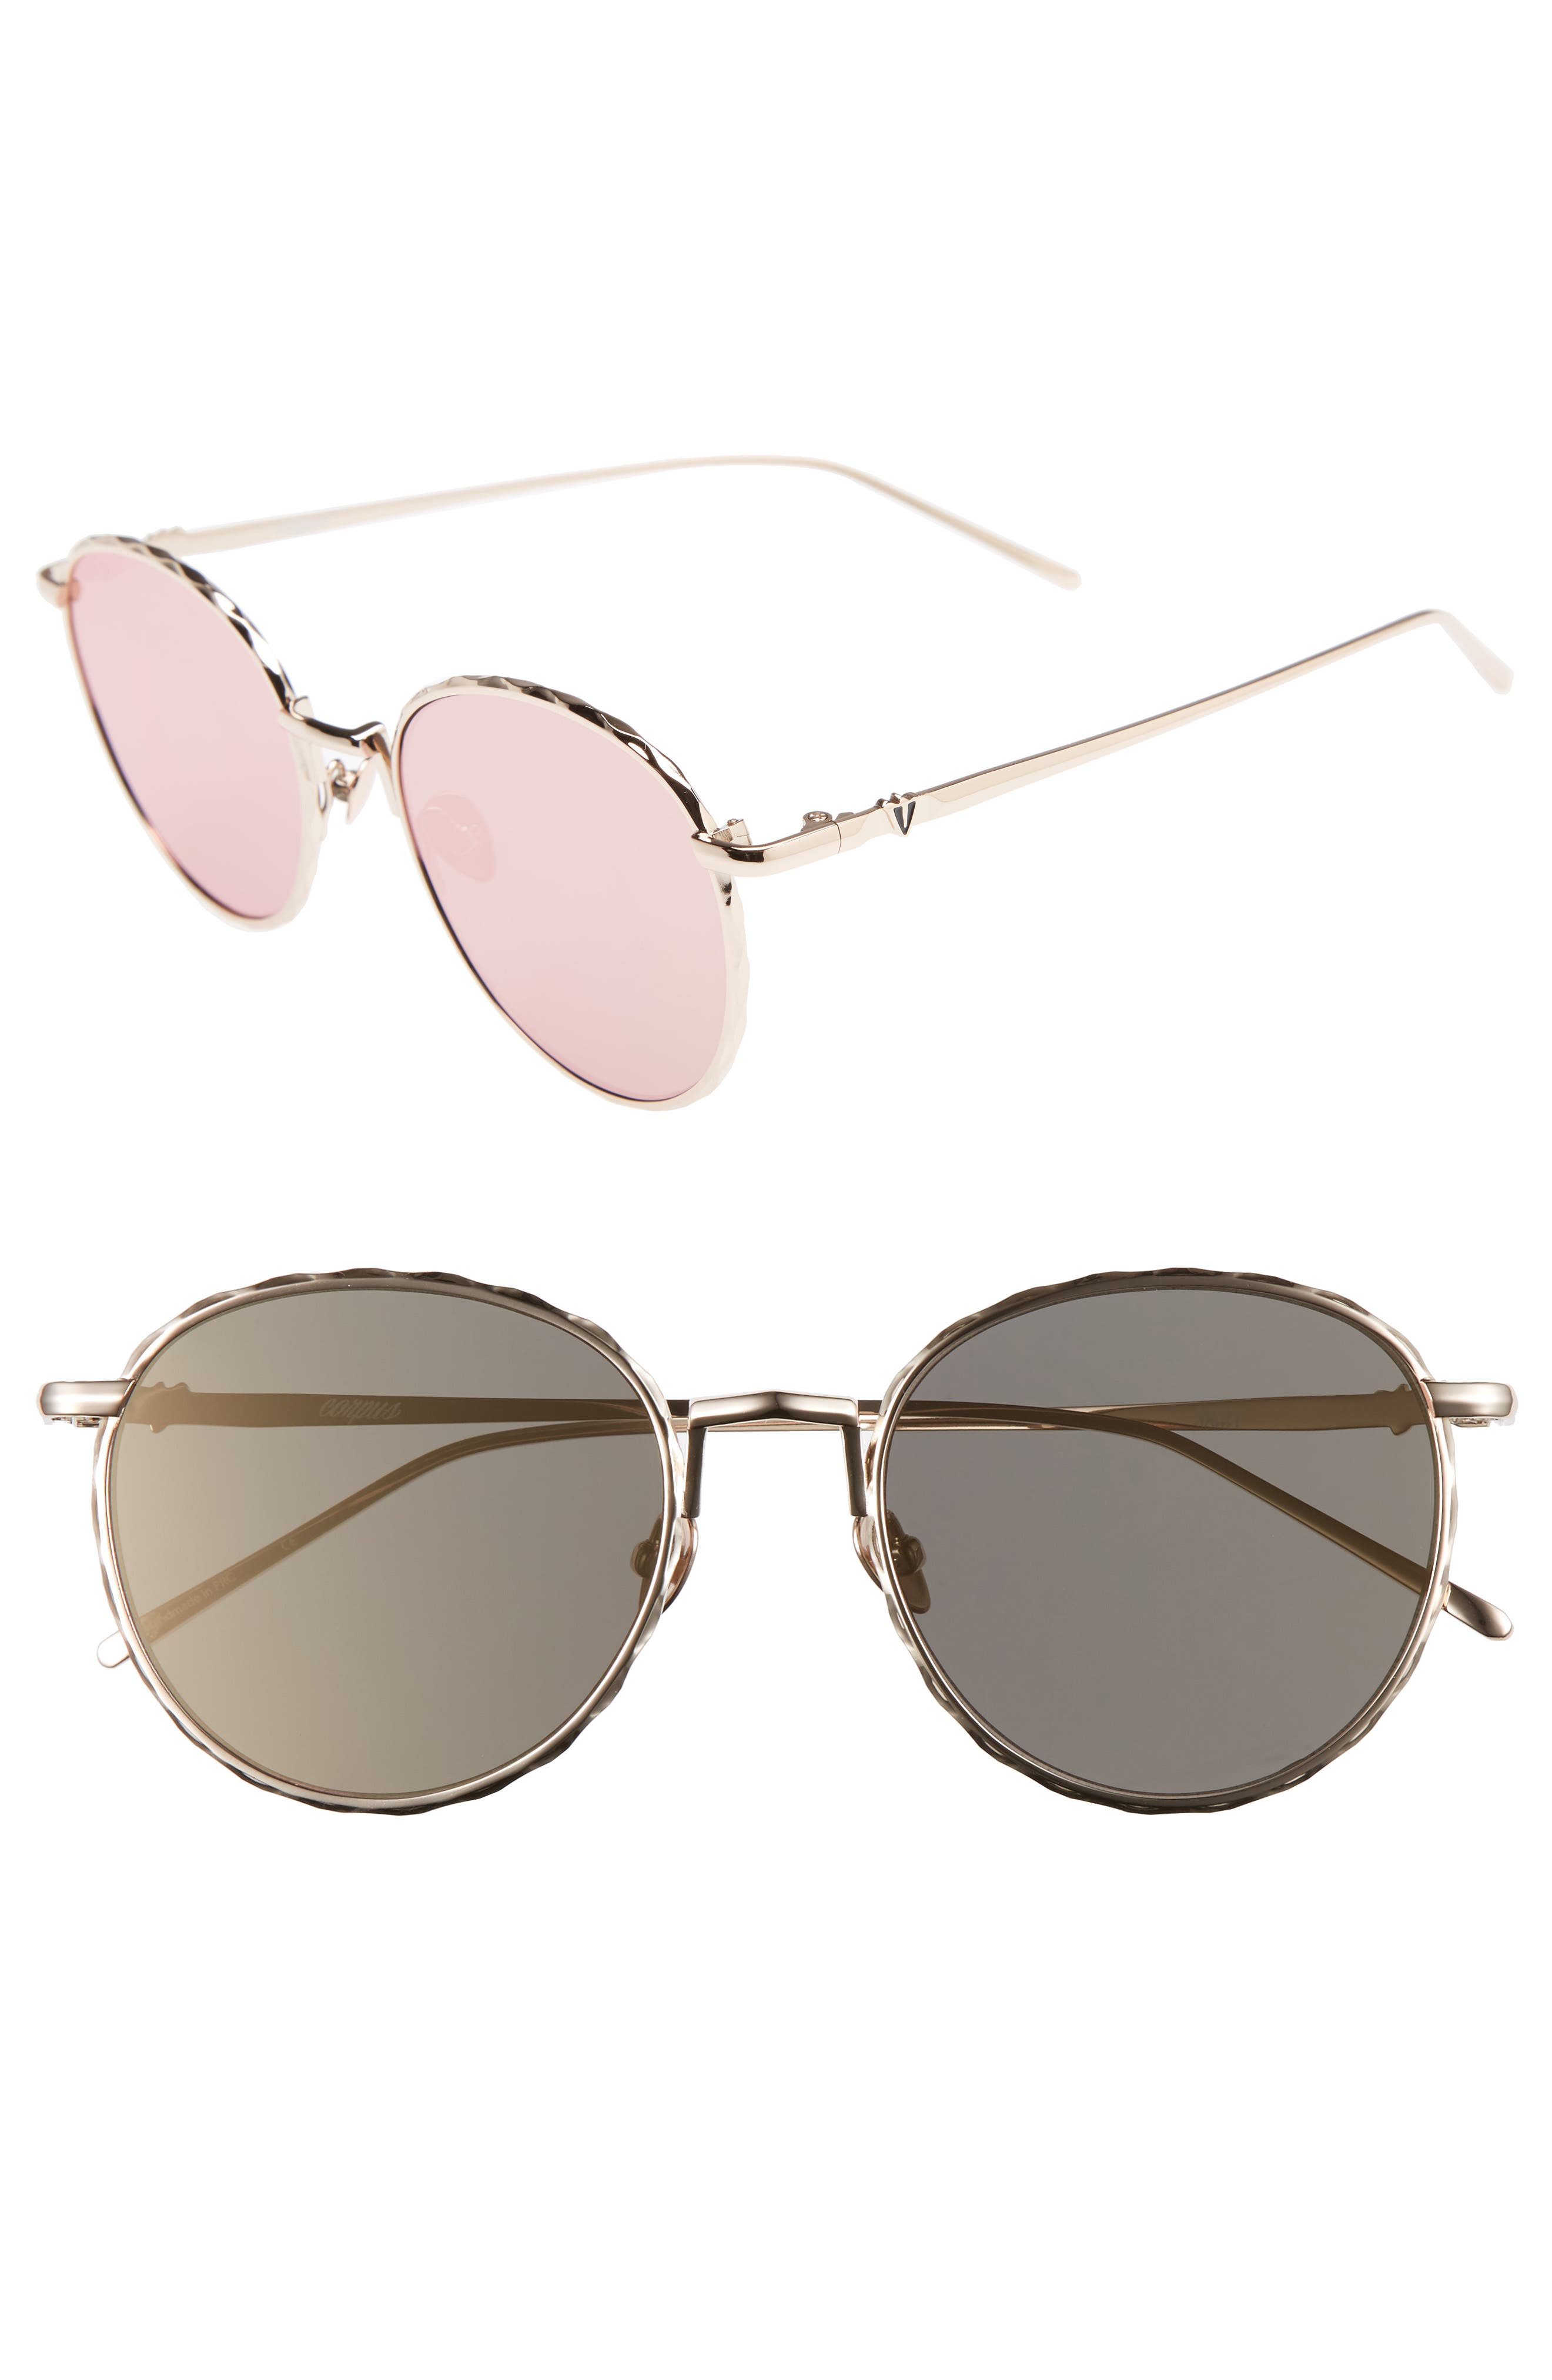 Corpus 53mm Round Sunglasses,                             Main thumbnail 1, color,                             Rose Gold/ Rose Gold Mirror